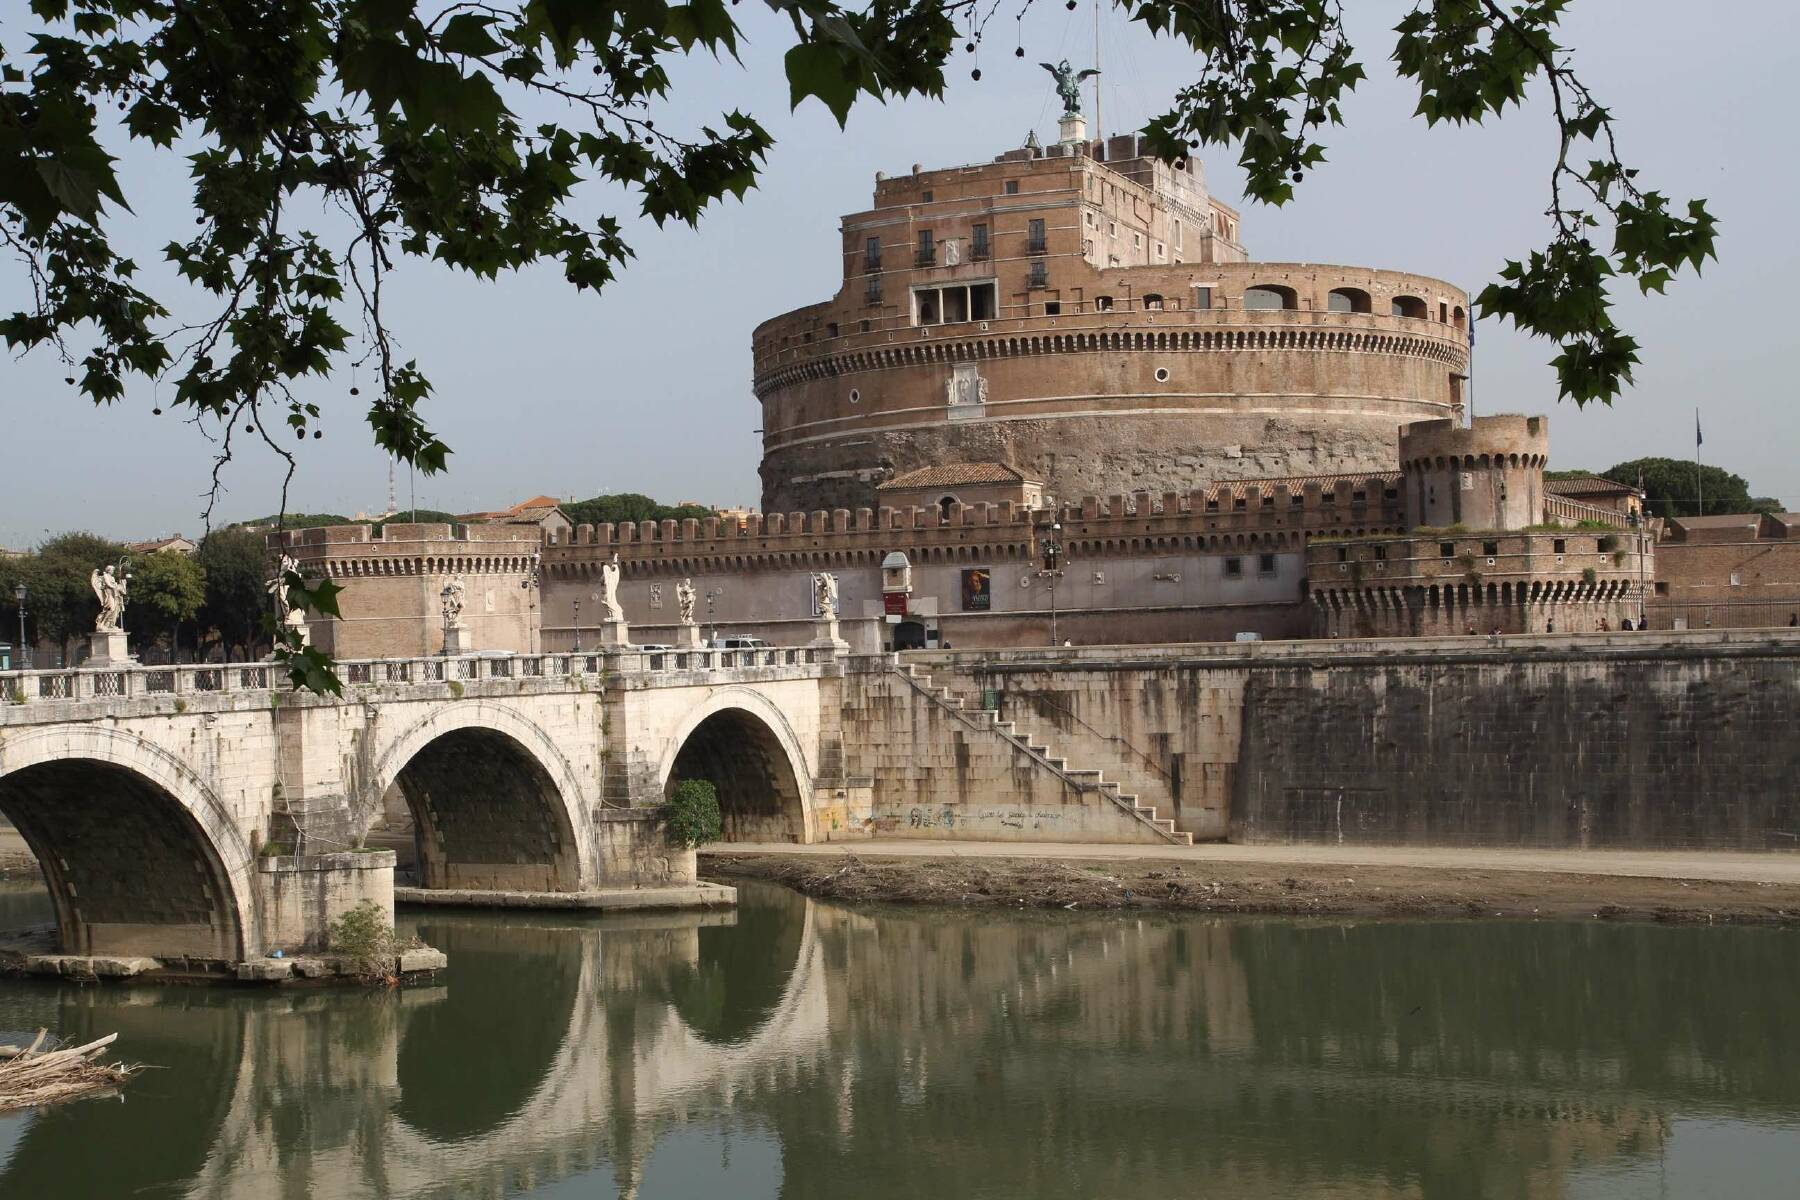 ᐅ Castel Sant'Angelo - Compare Ticket Prices from Different